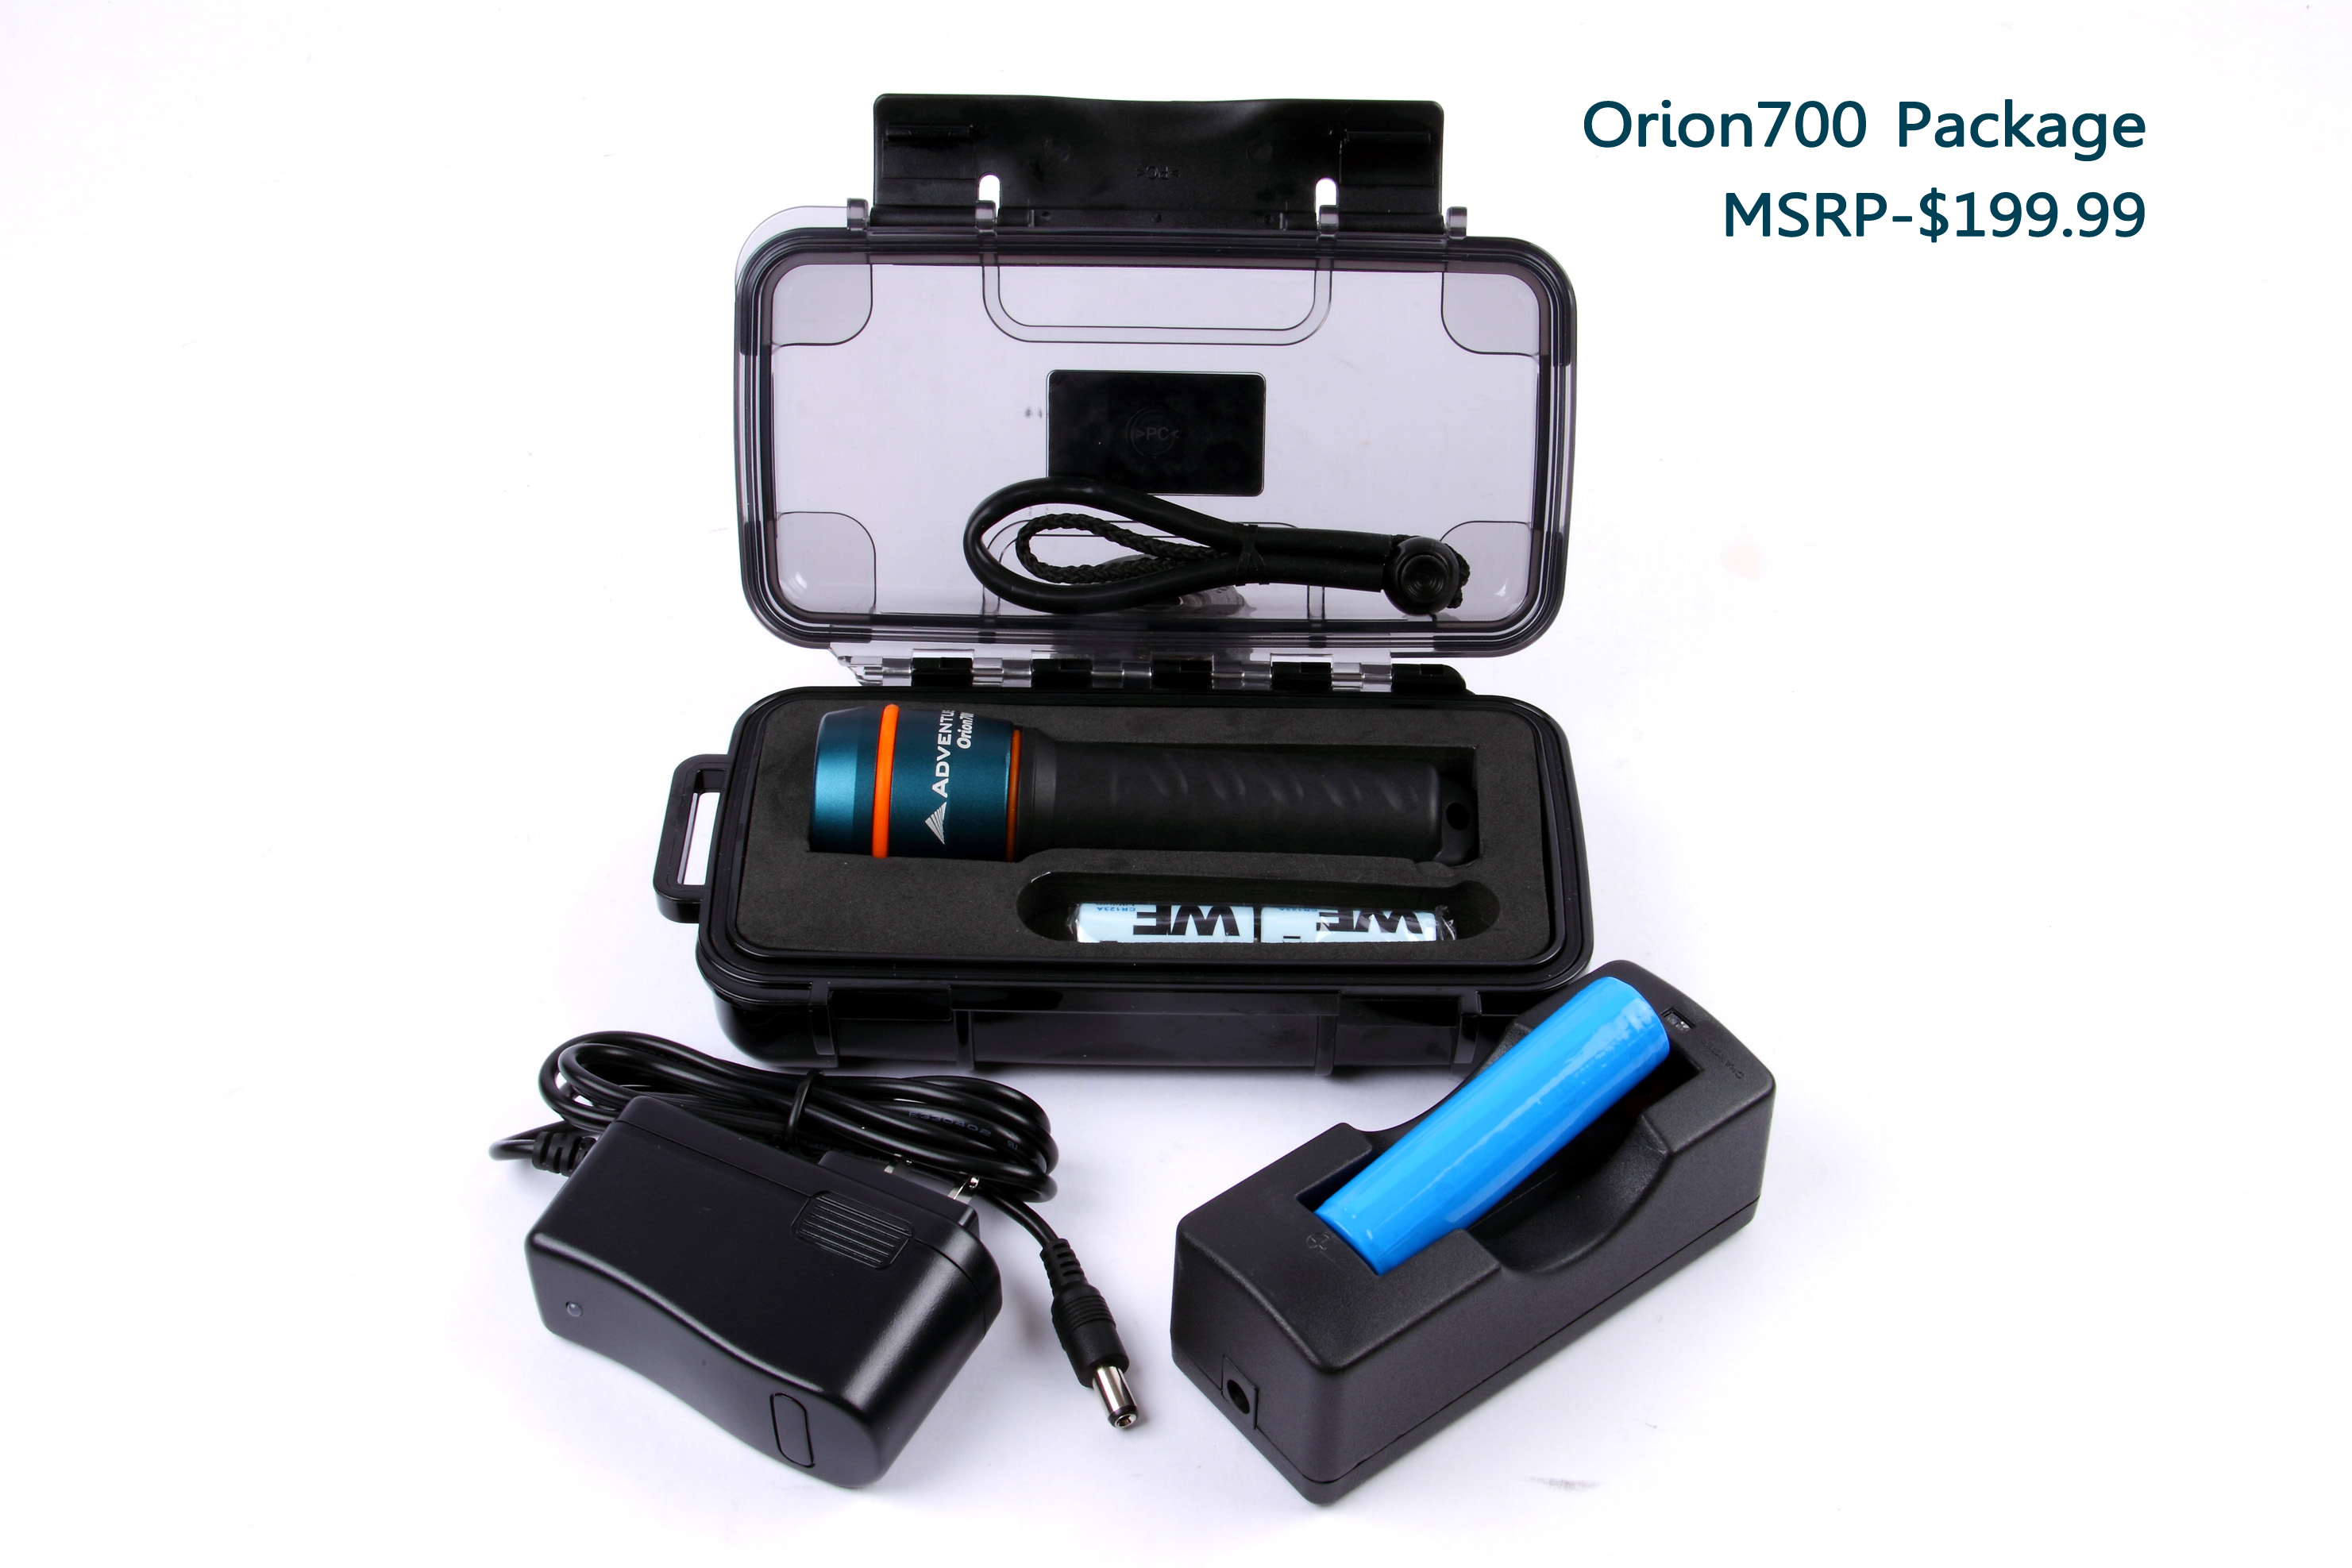 Orion700v Package